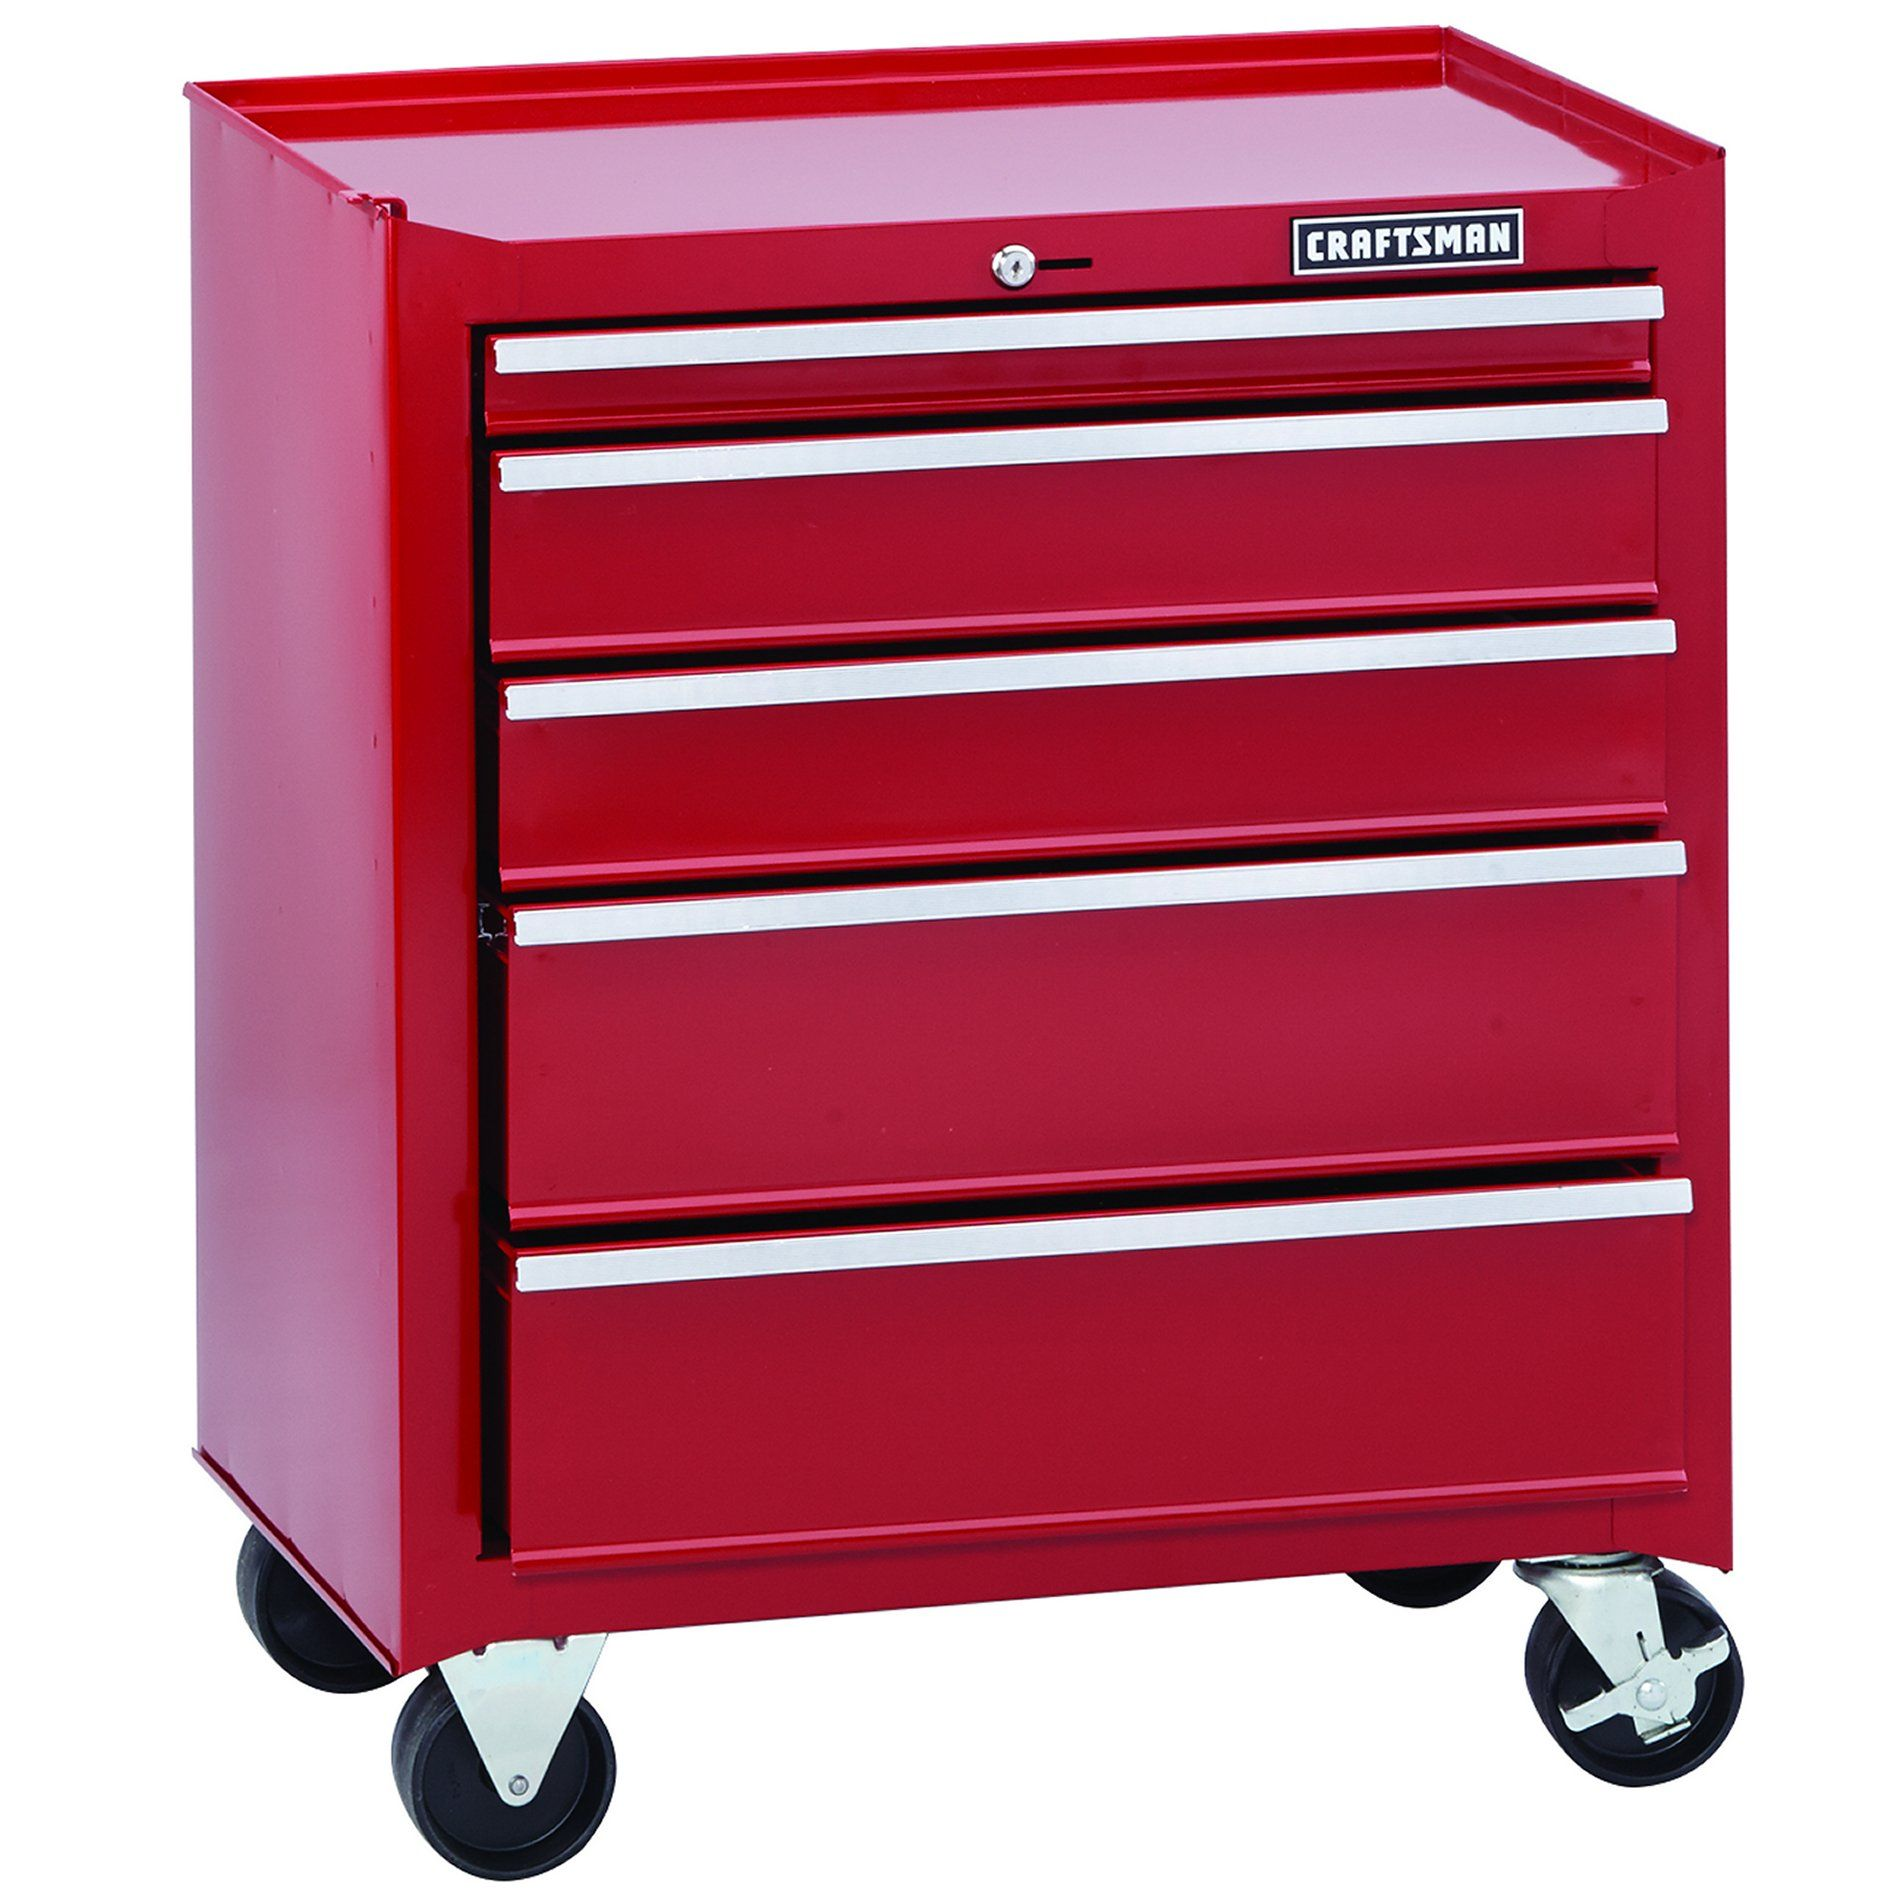 Rare Vintage Grey Red Craftsman Tool Box Chest 10 Drawer 65282 9 Drawer 65039 Ebay Craftsman Tools Chest Craftsman Tools Metal Storage Cabinets